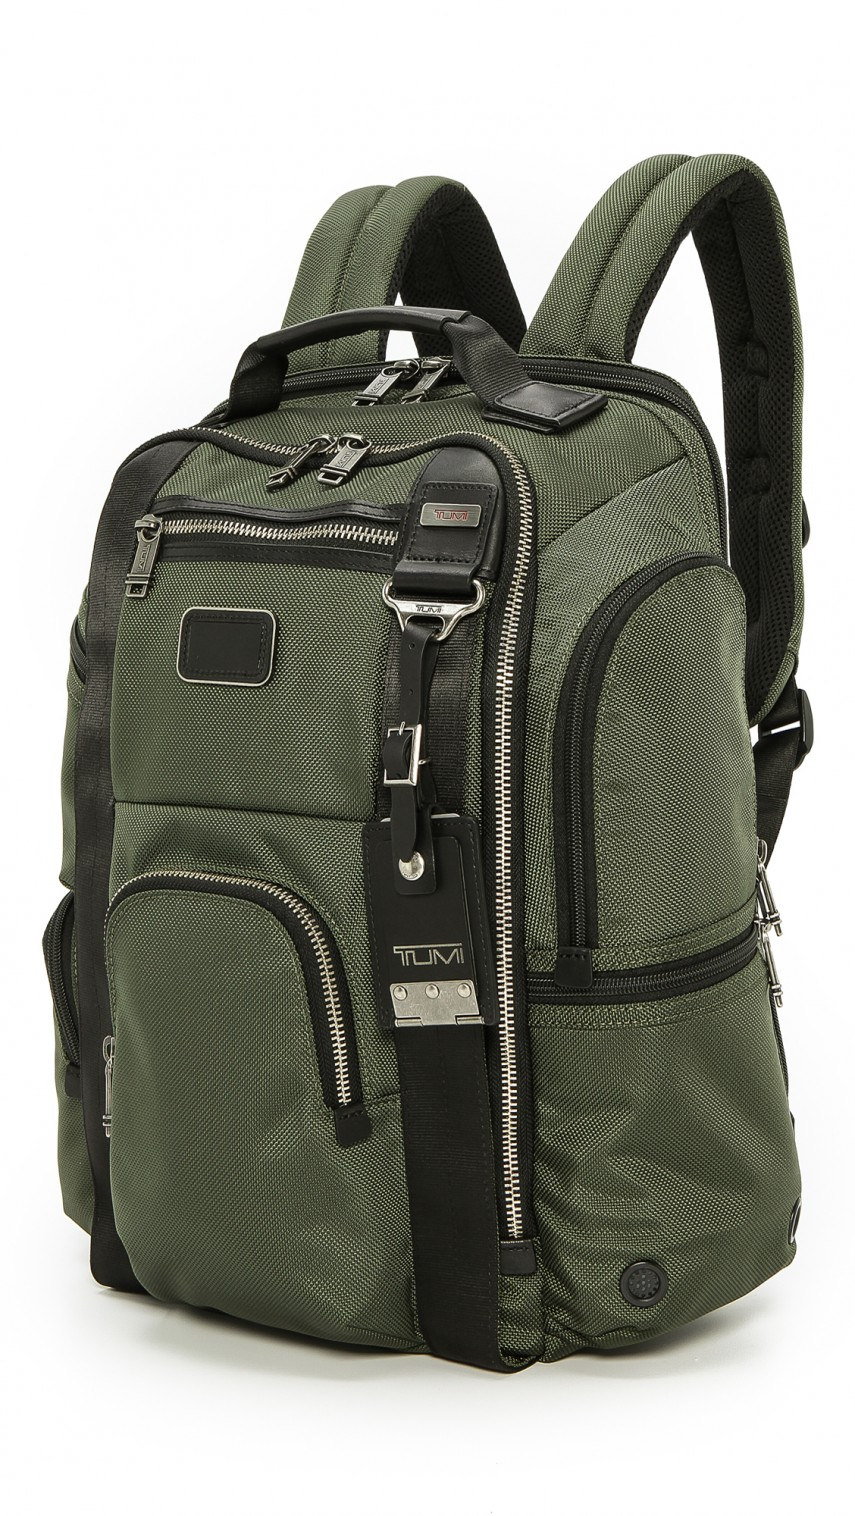 Tumi Alpha Bravo | Tumi Alpha Bravo Knox Backpack Leather | Tumi Alpha Bravo Spruce